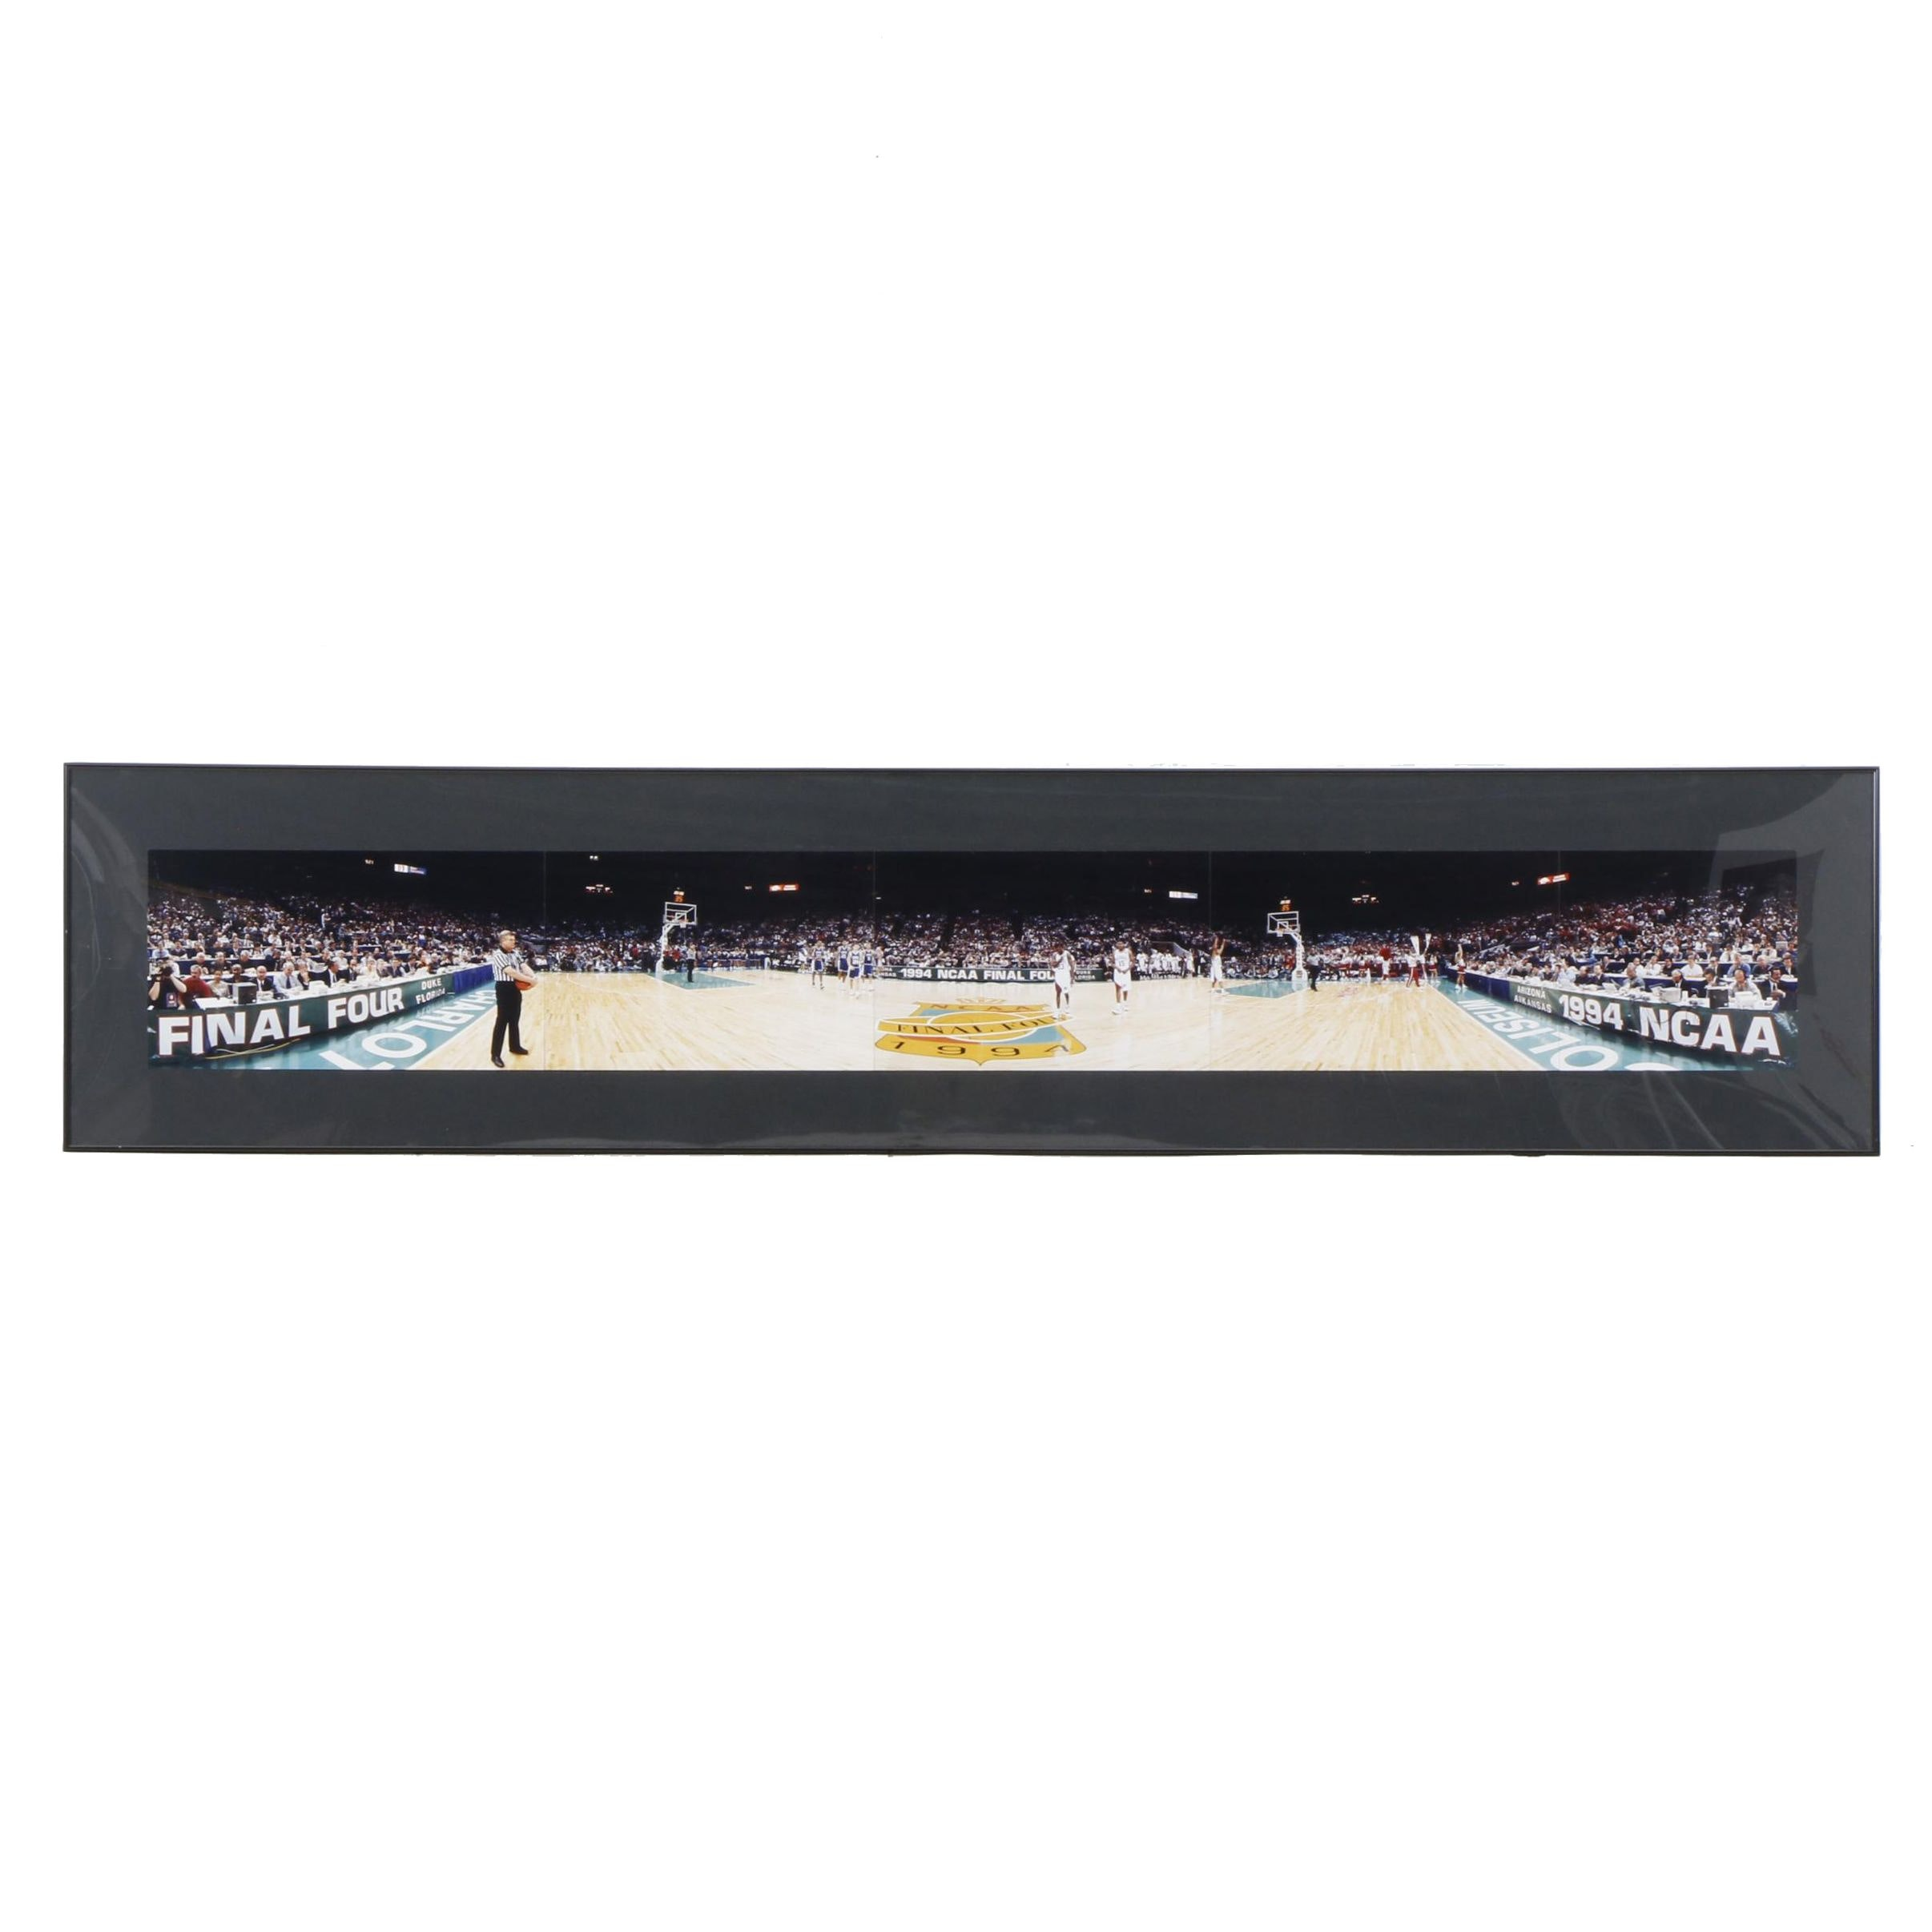 Five Rich Clarkson Photo Panoramic 1994 Final Four Display